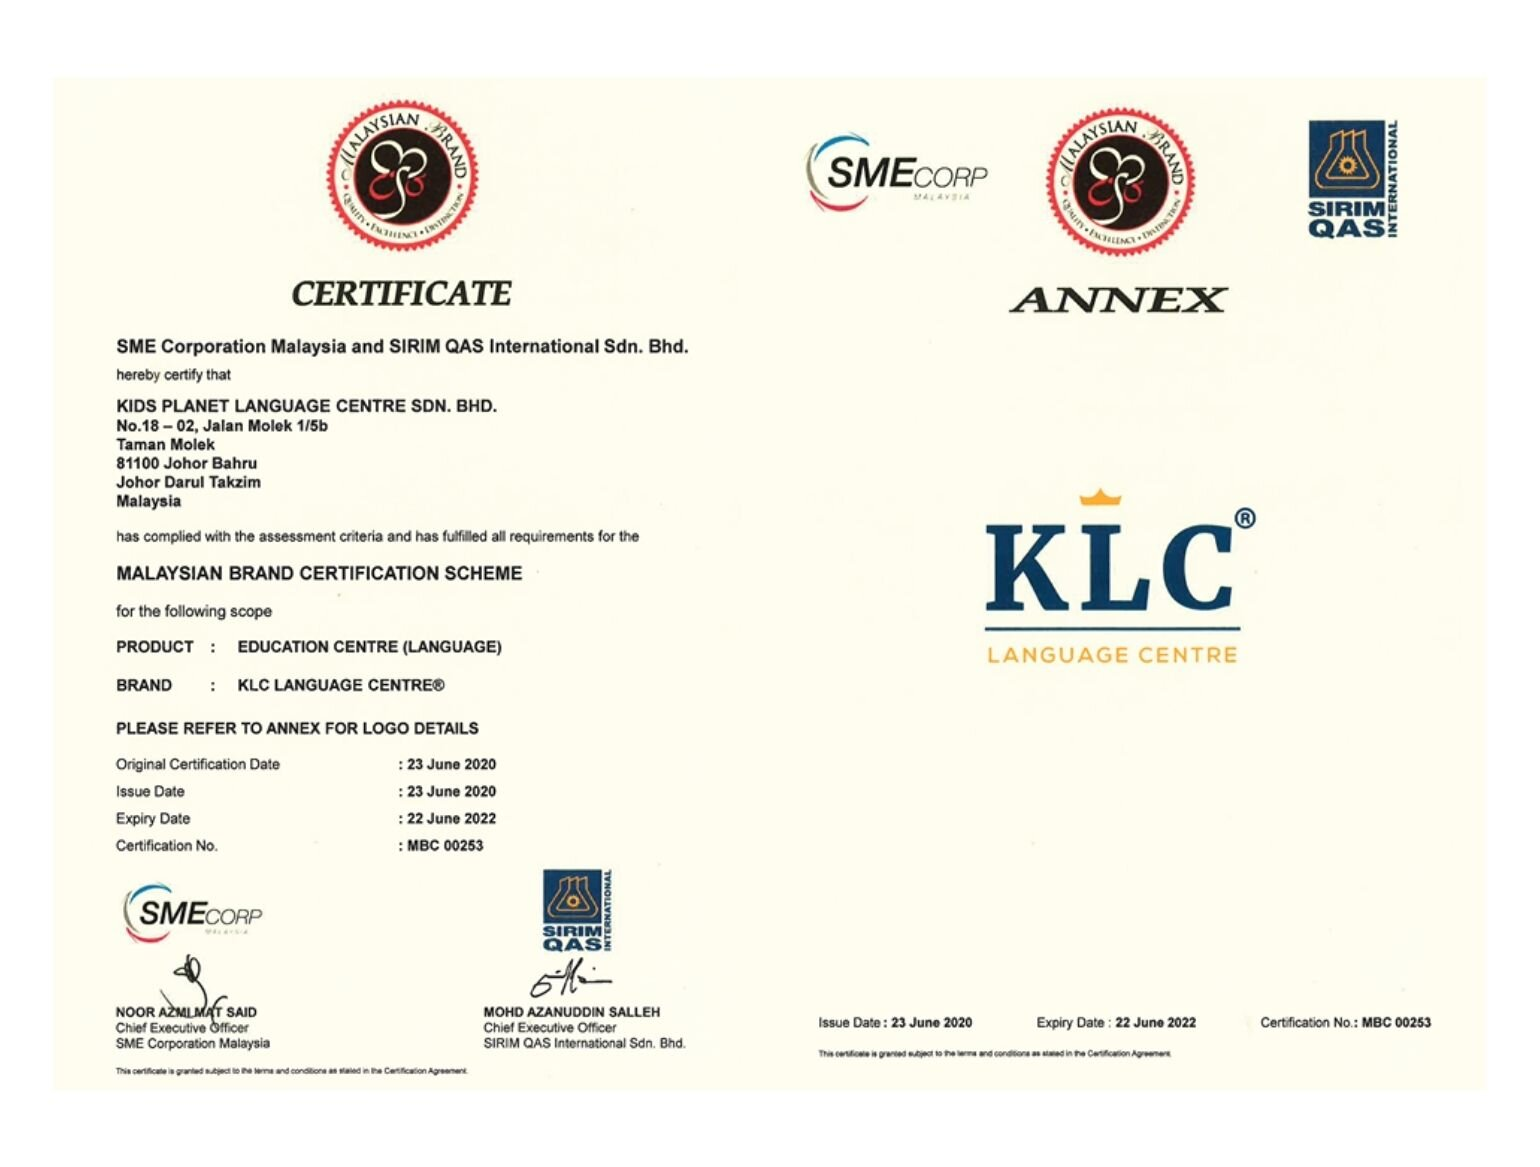 KLC Language Centre Certified by National Mark of Malaysian Brand